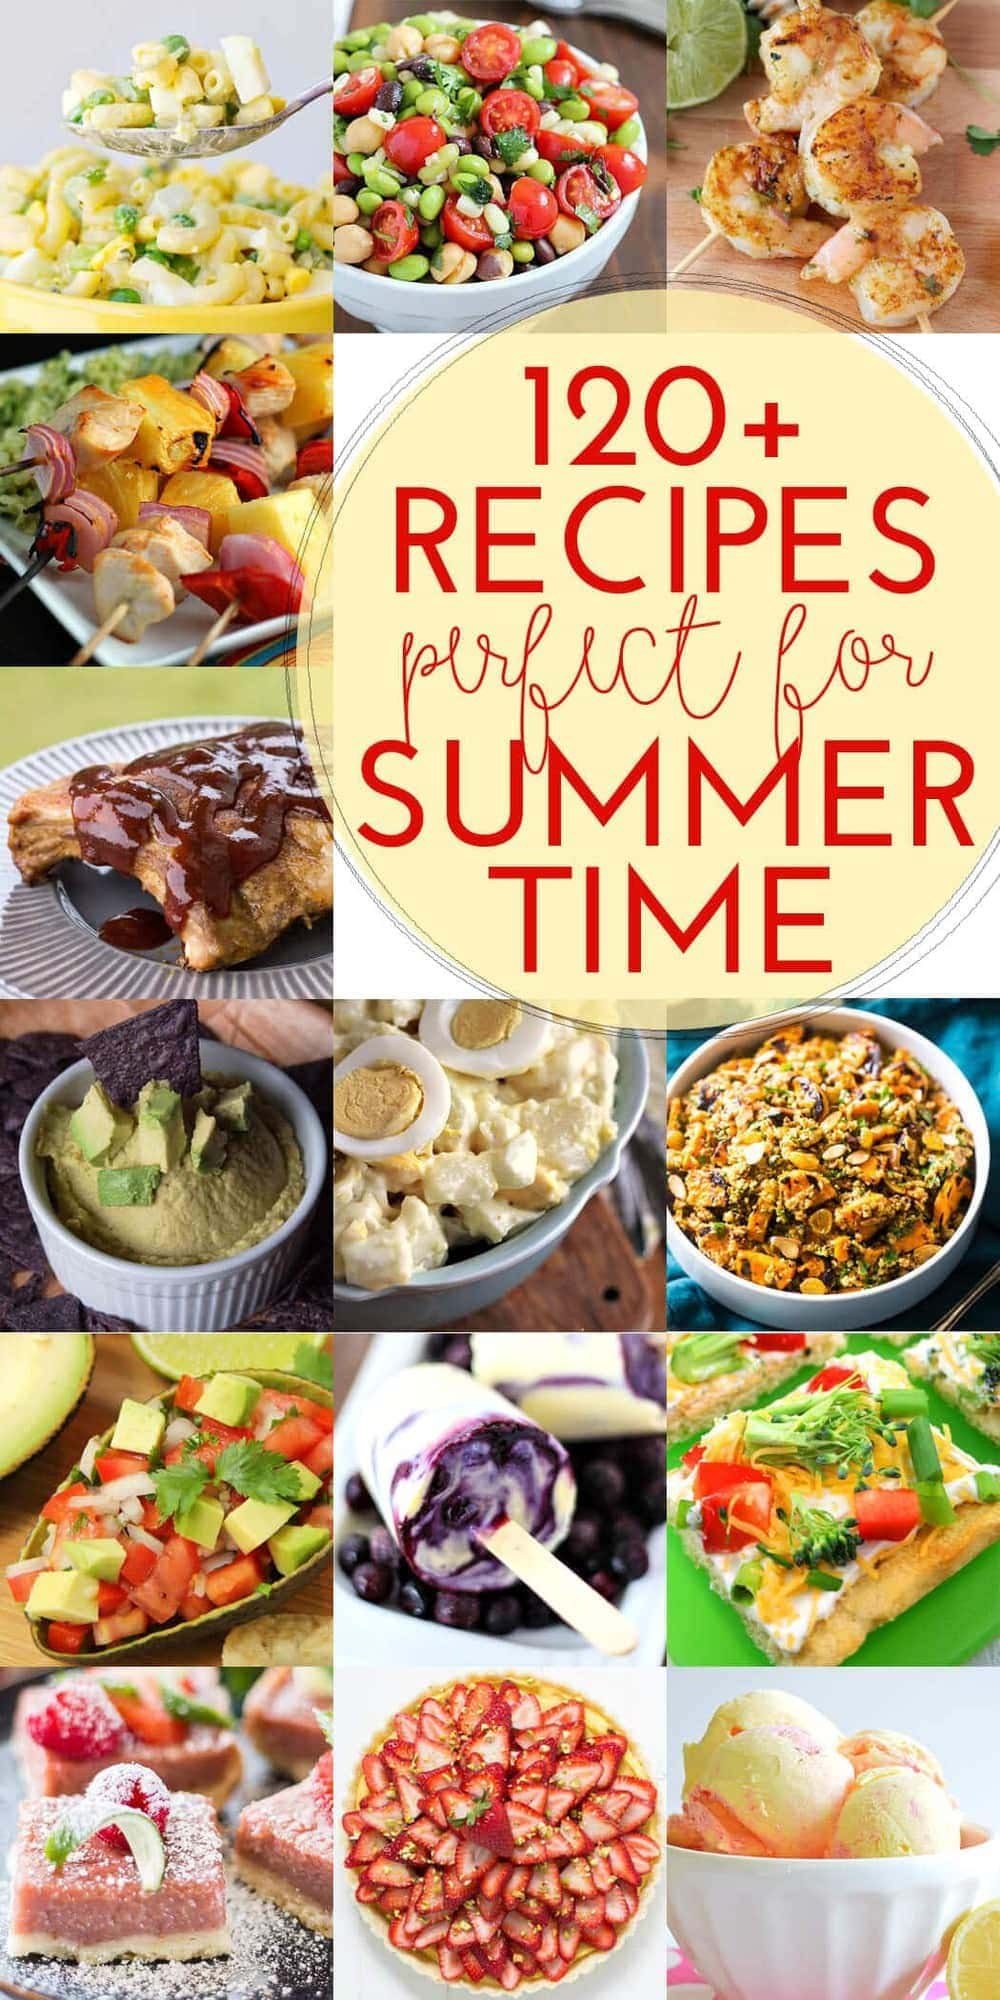 120+ Recipes for Summer ~ Everything from Potato Salad to Taco Dip to Your Favorite Steak Skewers!